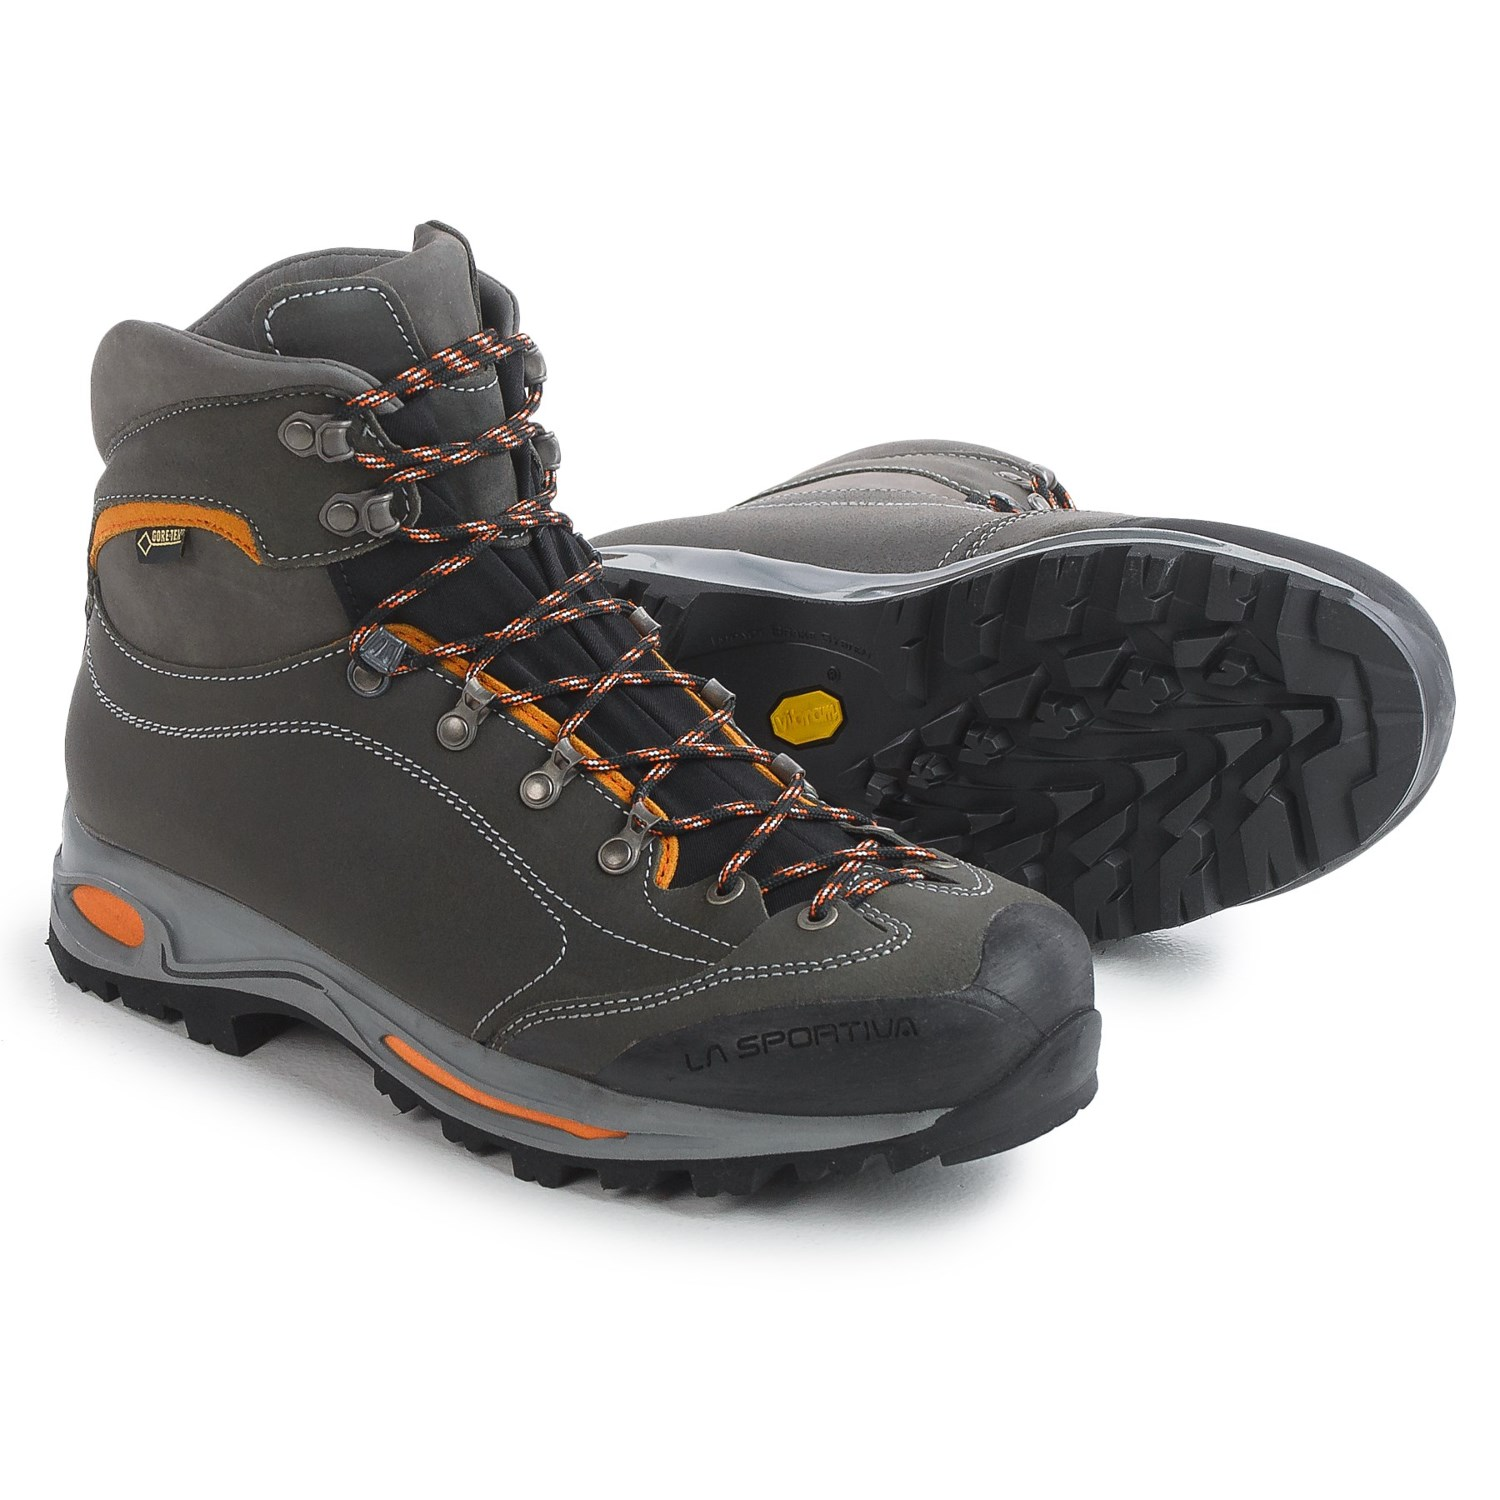 La Sportiva Omega Gore-Tex® Hiking Boots (For Men) - Save 37%